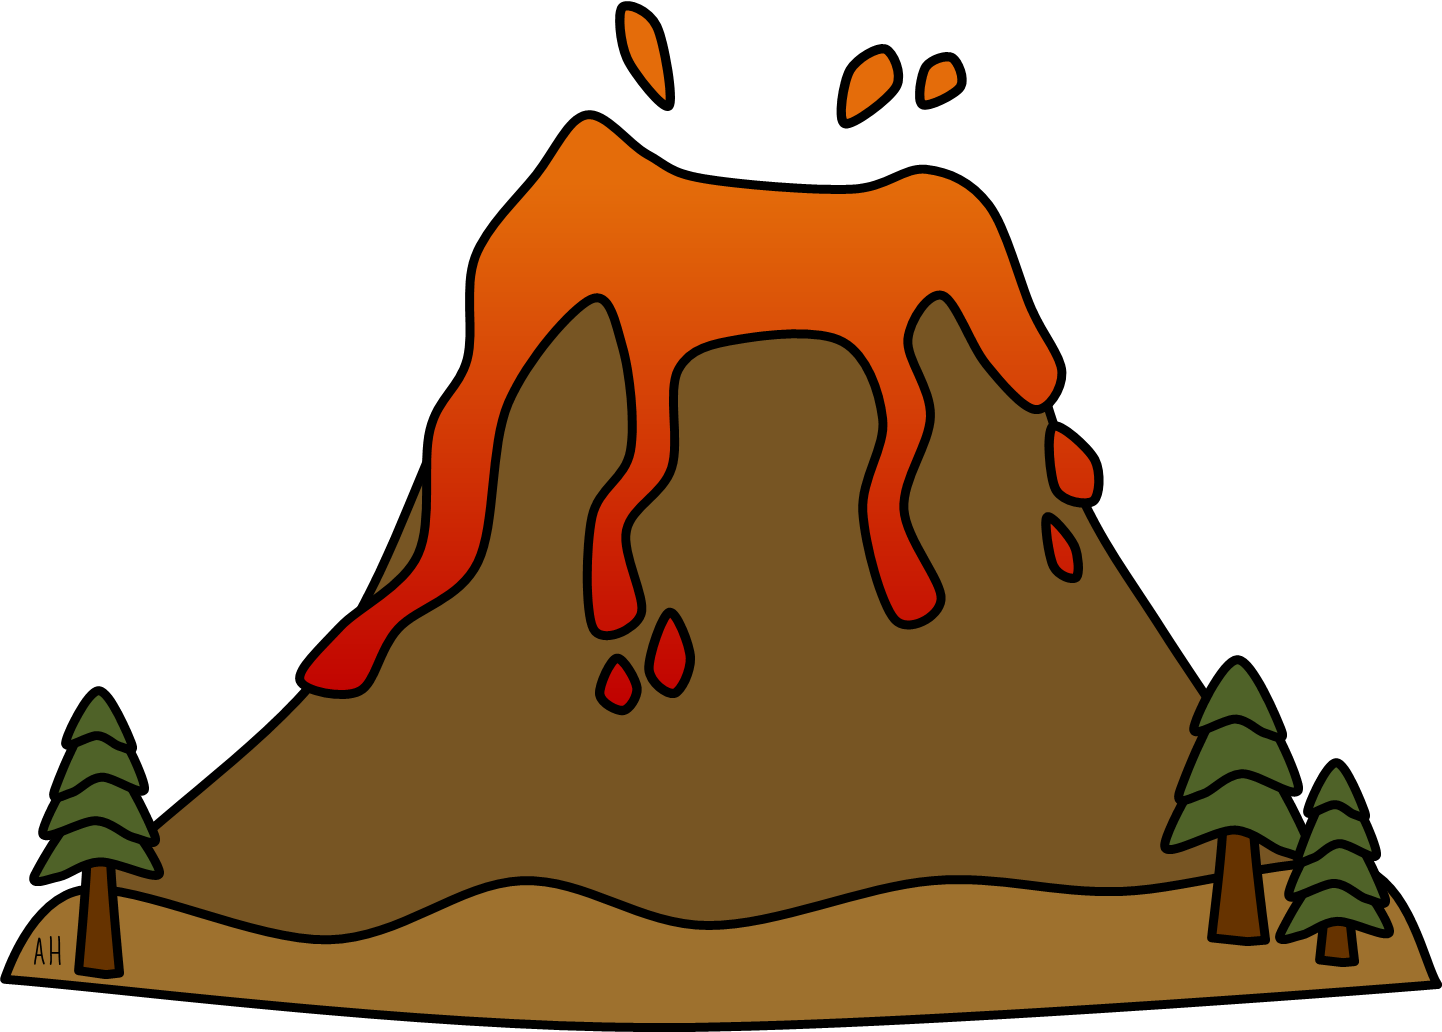 Earthquake clipart volcano.  collection of free